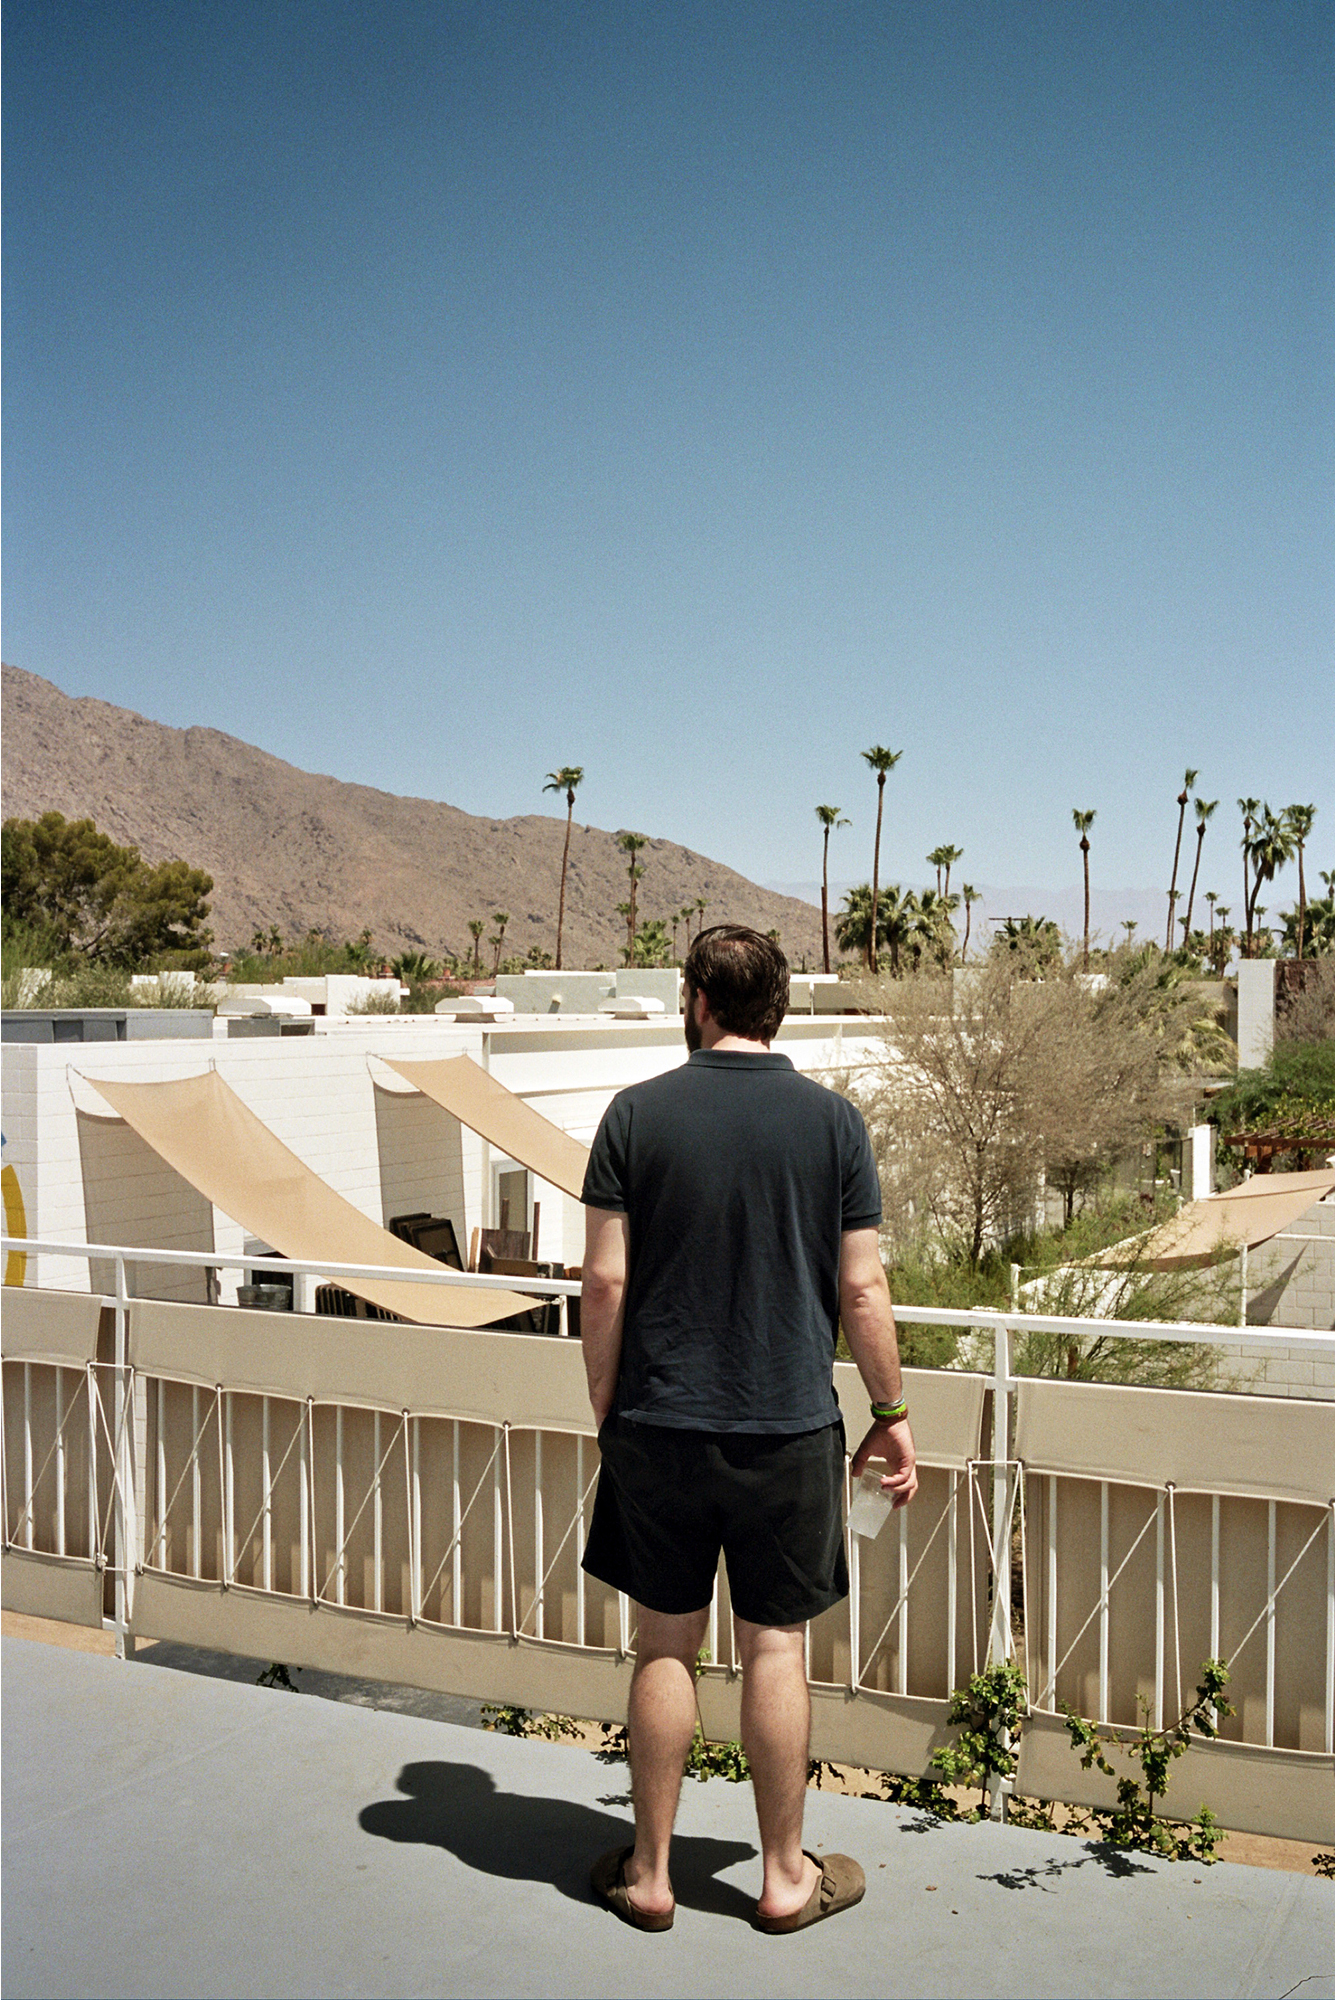 Kevin, photographed for Ace Hotel Group, Palm Springs, 2013